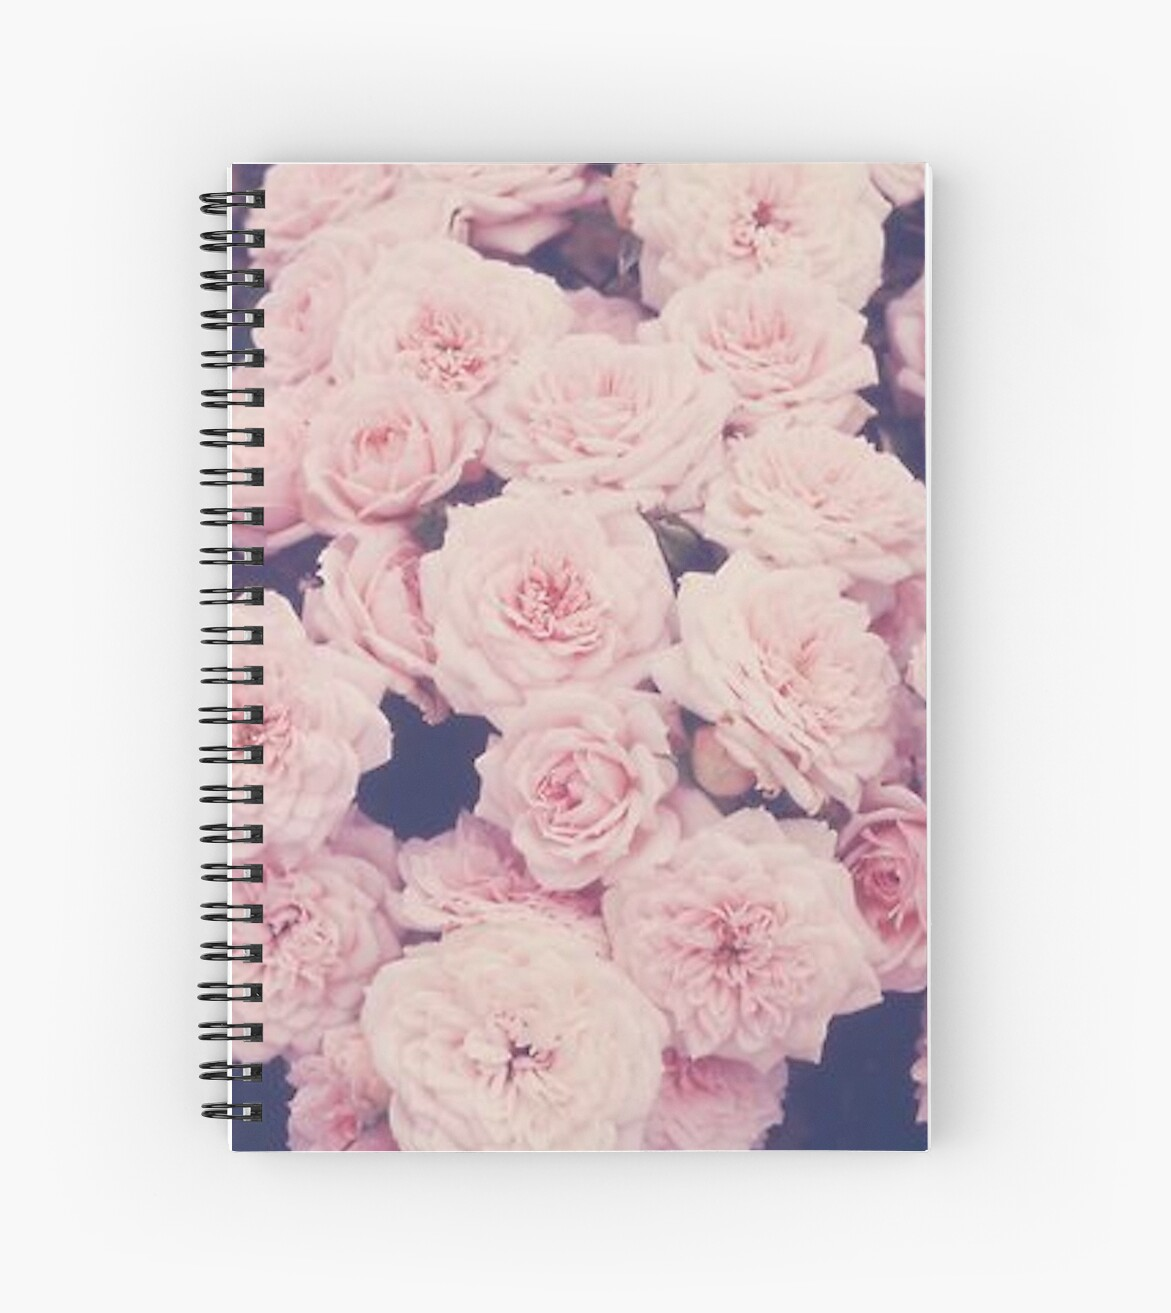 pink tumblr roses spiral notebooks by ellelouise101 redbubble